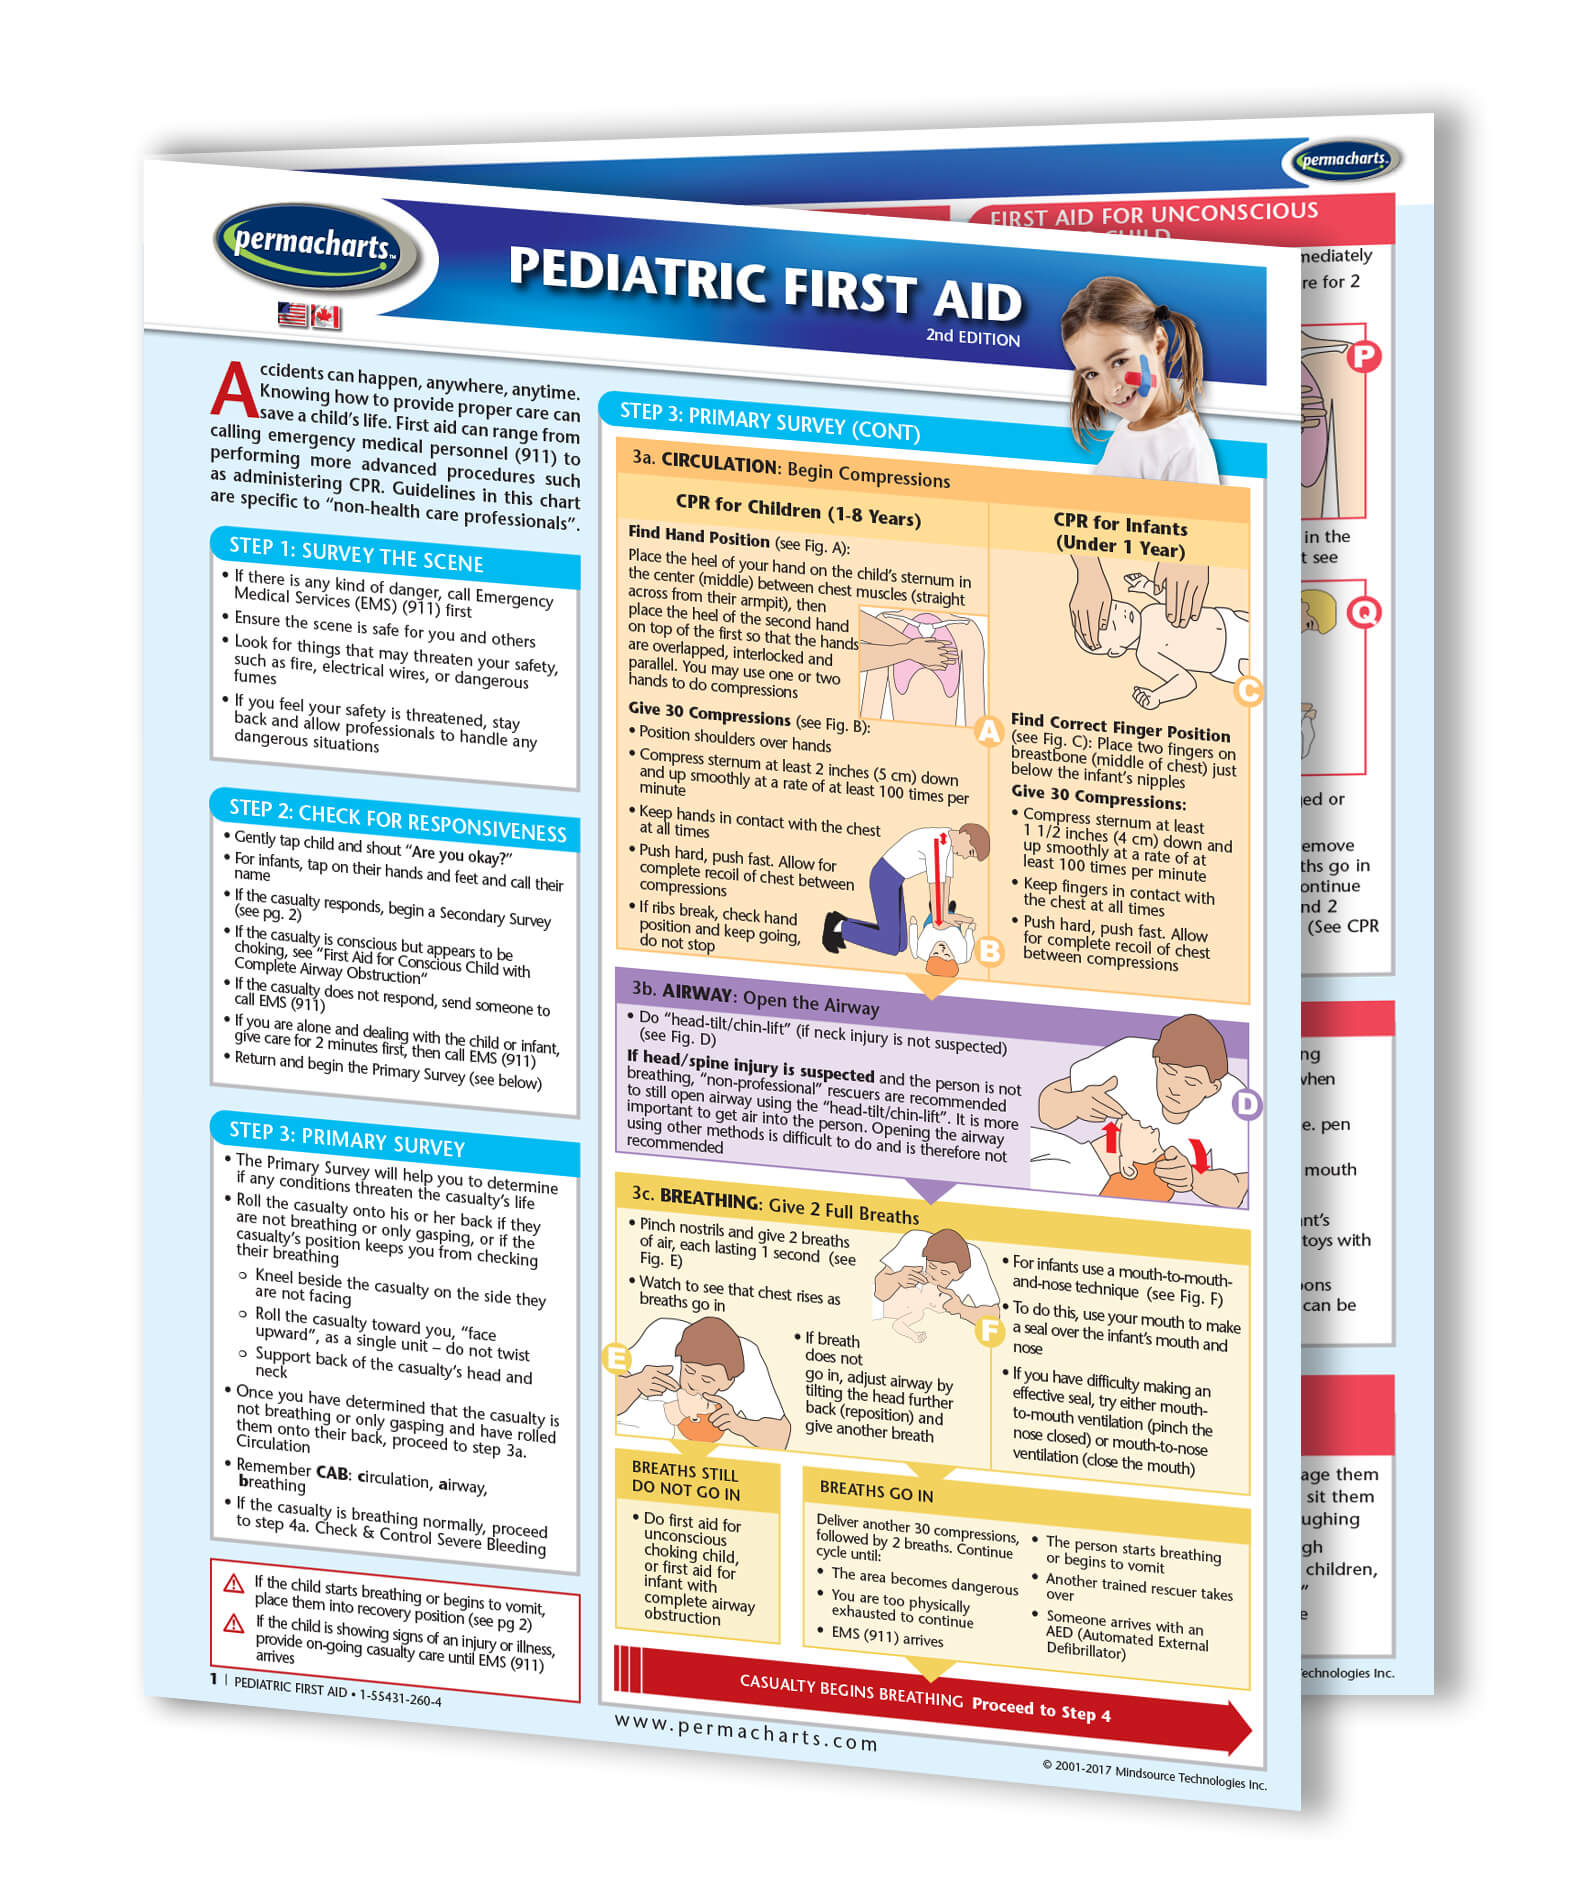 Pediatric First Aid Chart - 4-page Laminated Medical Quick Reference Guide